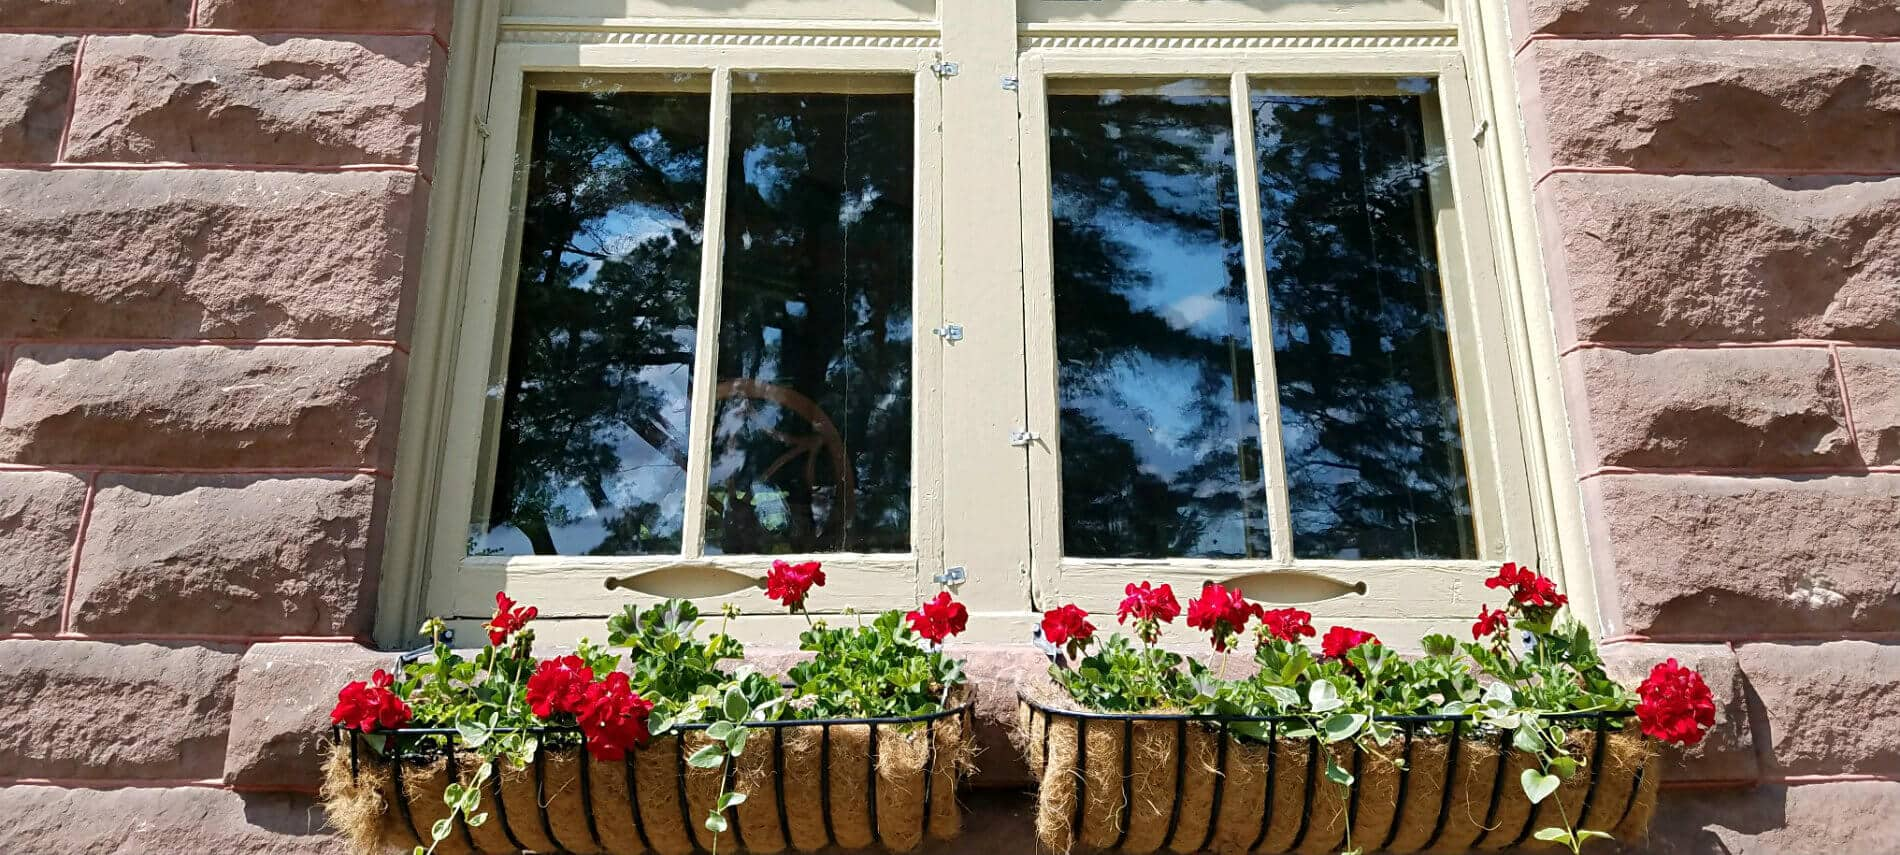 Close up view of exterior window surrounded by reddish stone and two window boxes with bright red flowers